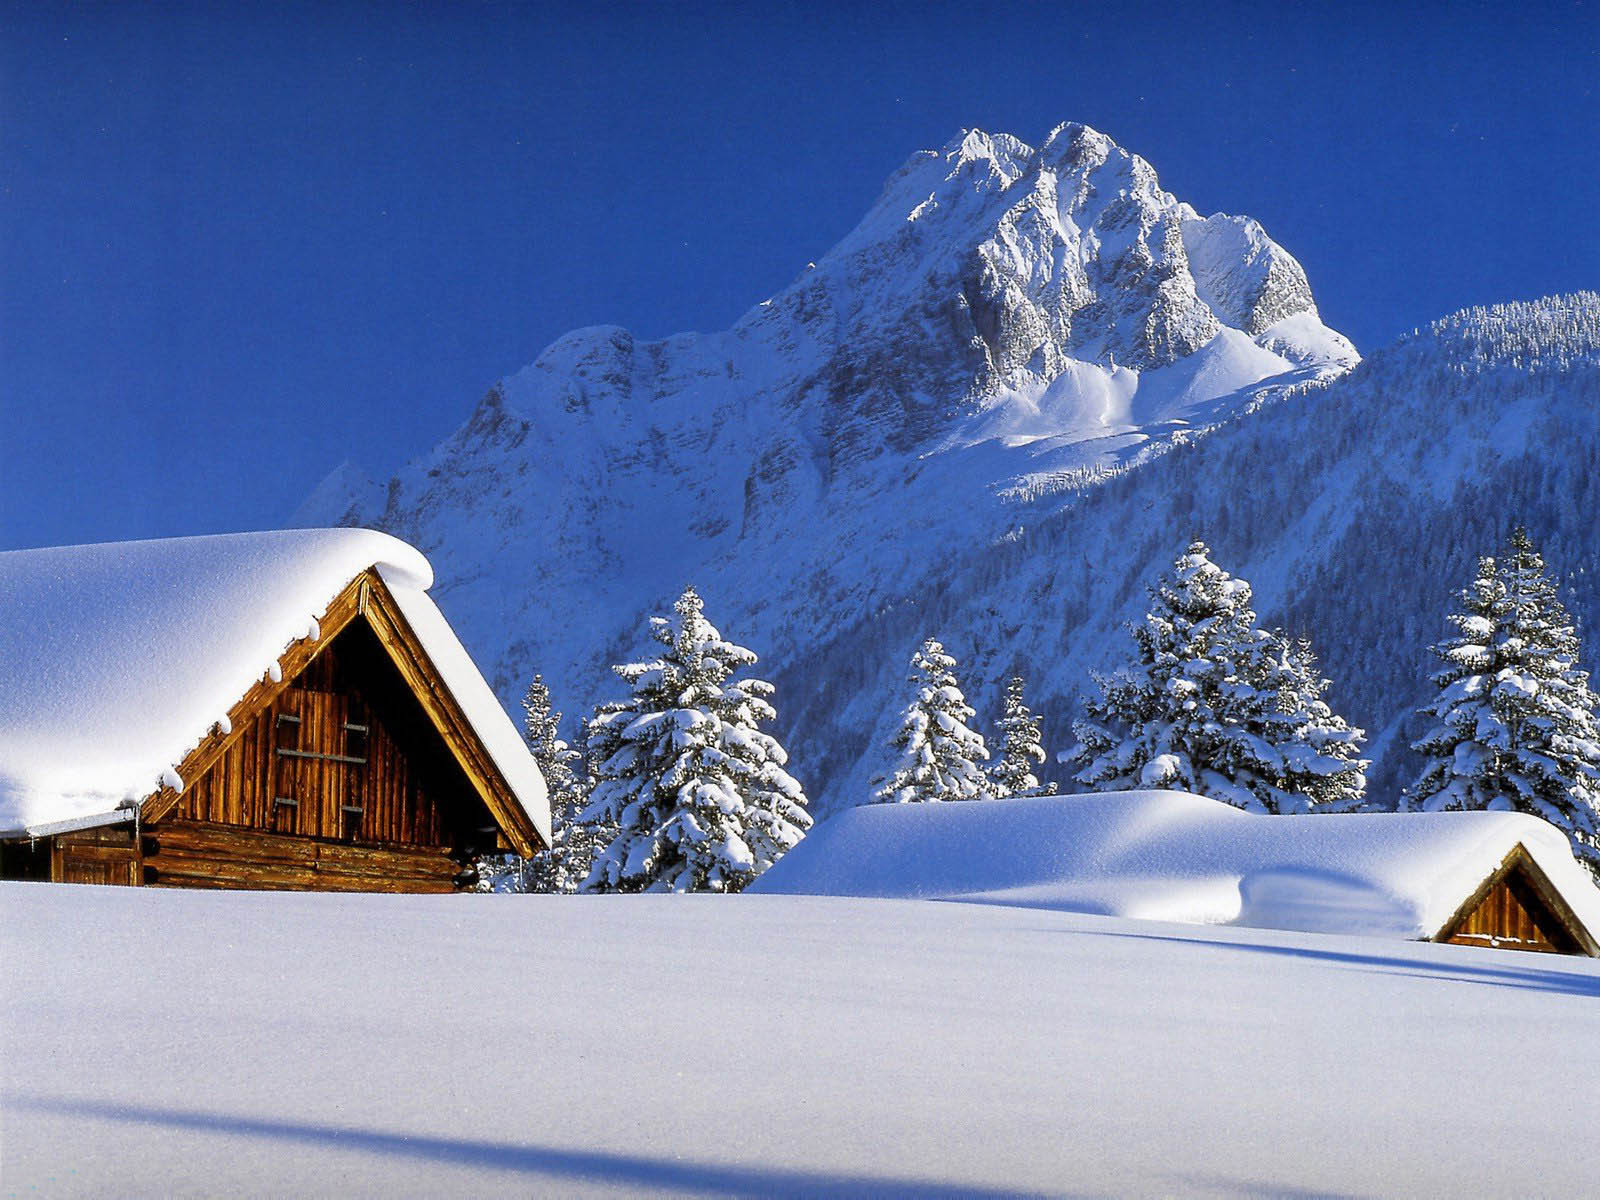 http://1.bp.blogspot.com/-GNgxThWbmpM/UI6jKz_APxI/AAAAAAAAMis/f5hm_P9hGQk/s1600/Snow+Desktop+Wallpapers+and+Backgrounds+1.jpg